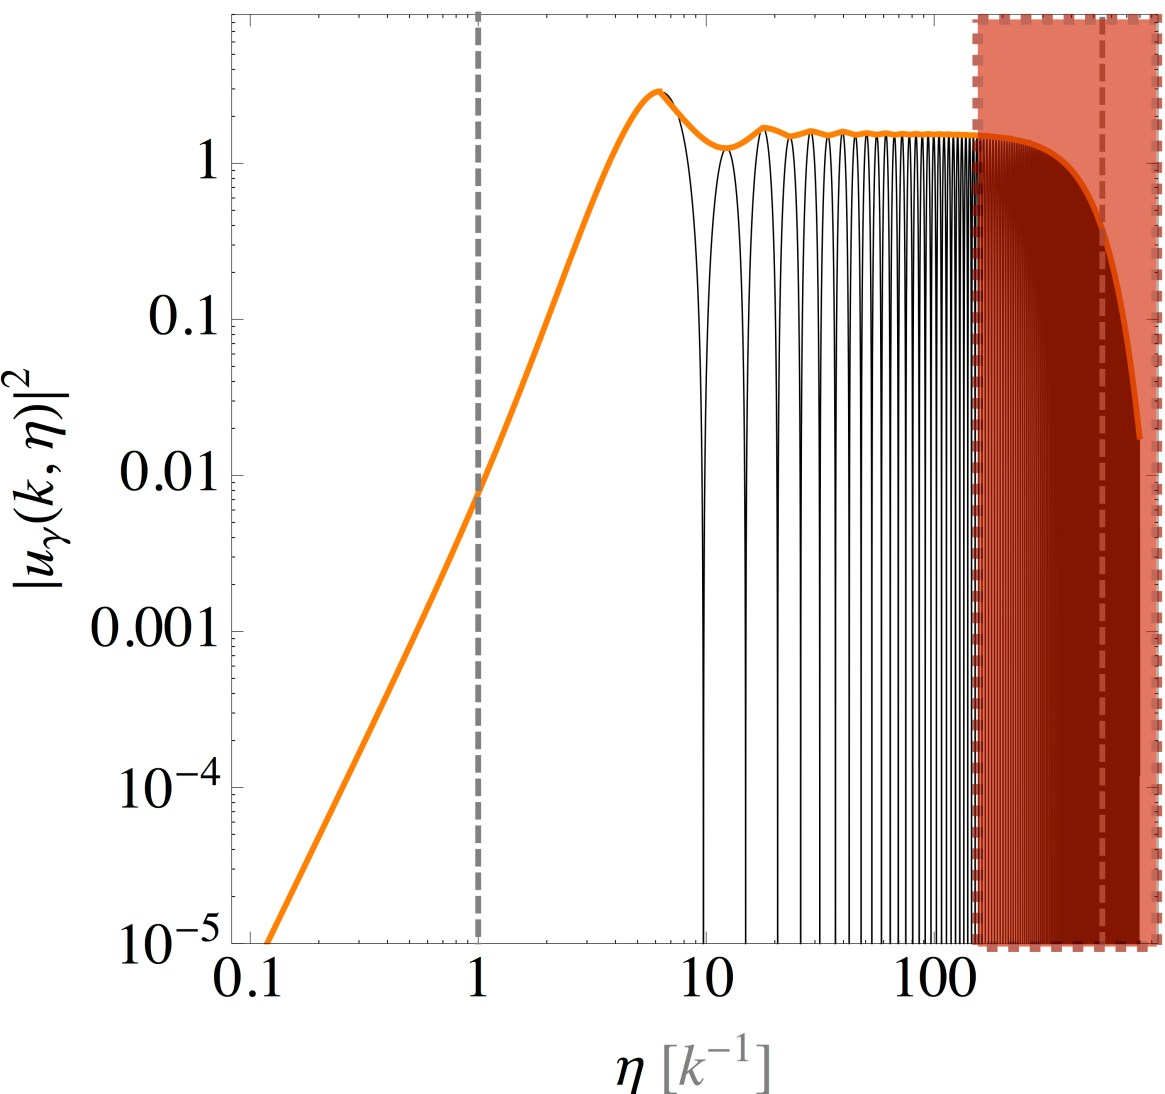 Probing early-universe phase transitions with CMB spectral distortions